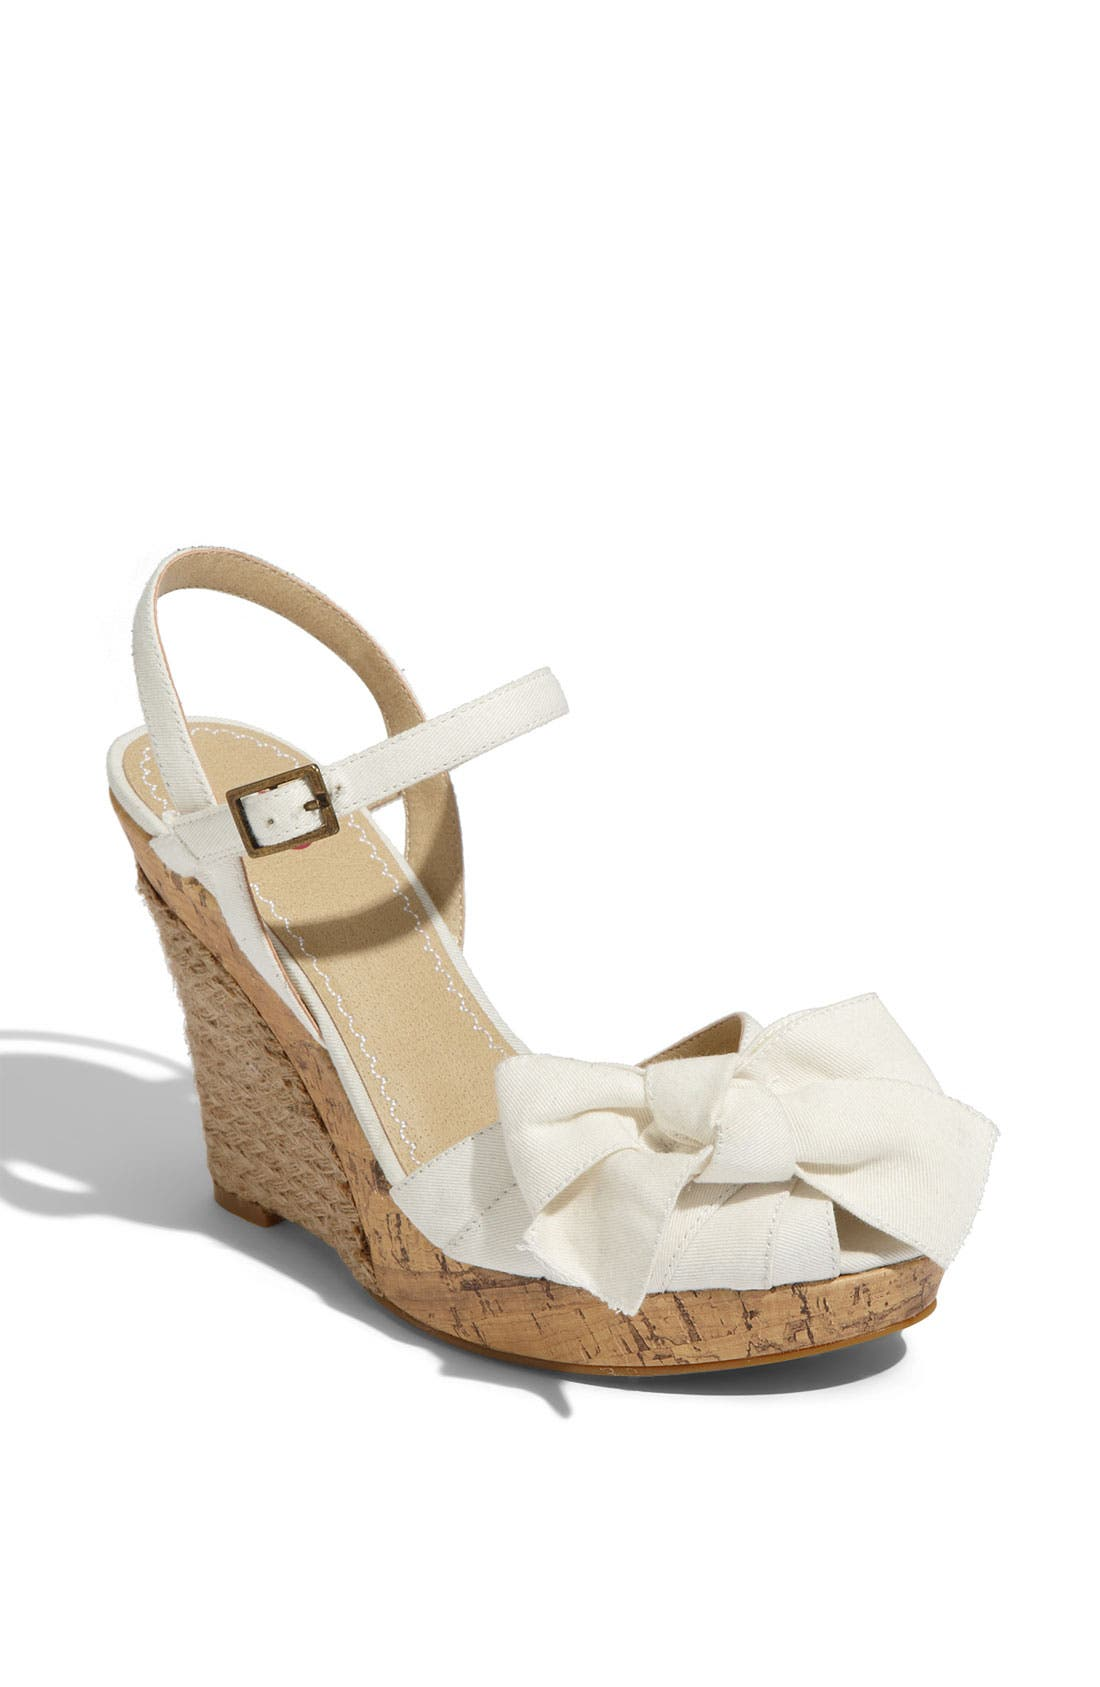 Alternate Image 1 Selected - BP. 'Bowtye' Sandal